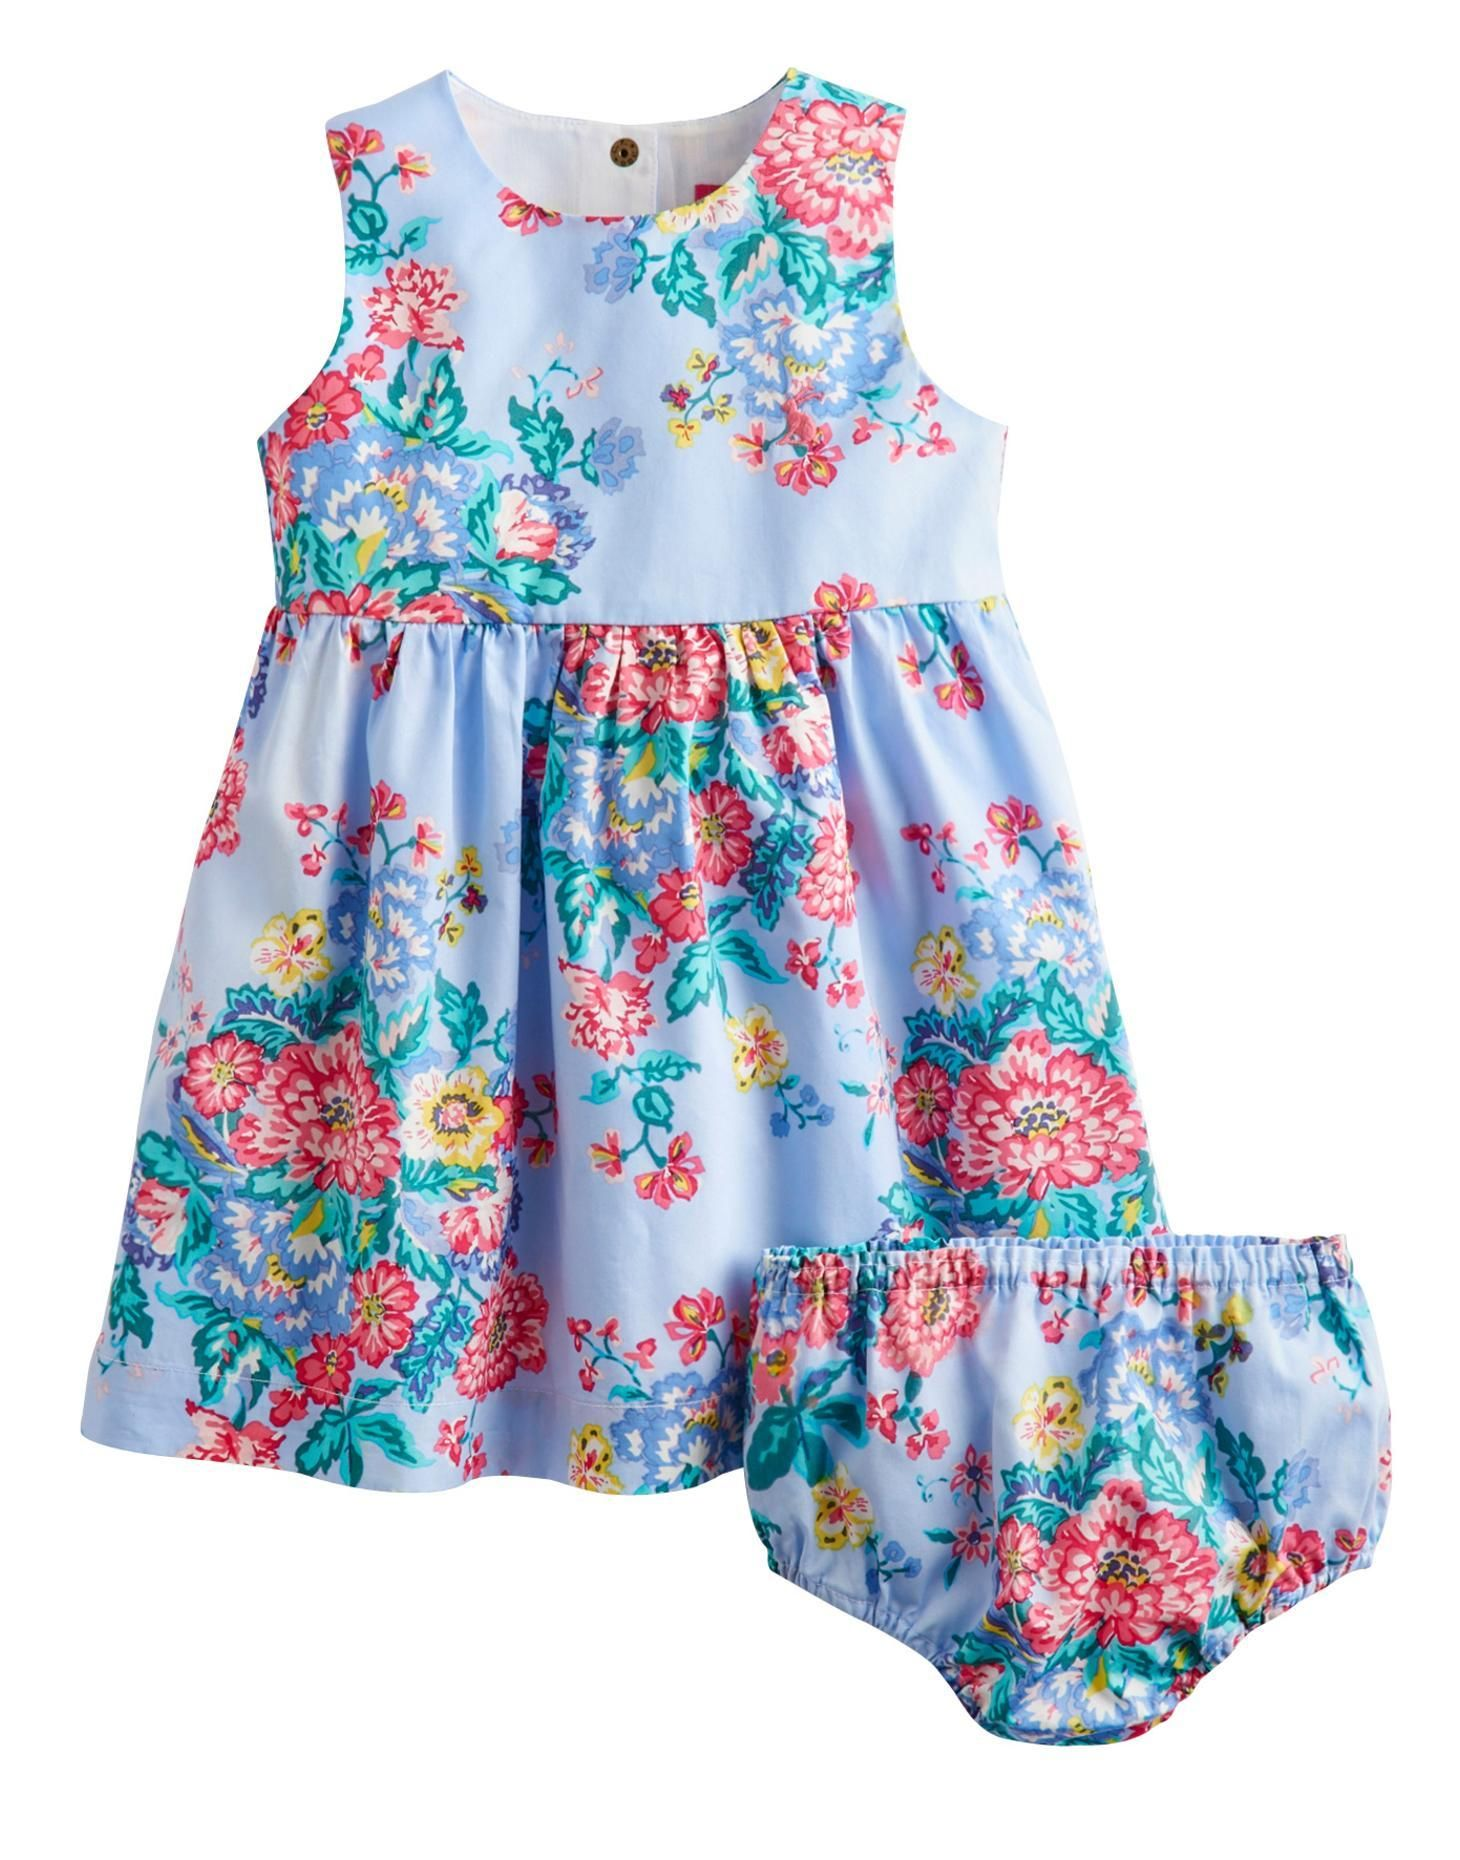 a7e82686d5 Joules Baby Girls Occasion Dress Set, Light Blue Floral. Just like our  Constance dress for bigger girls this dress and pants set features our  unique ...